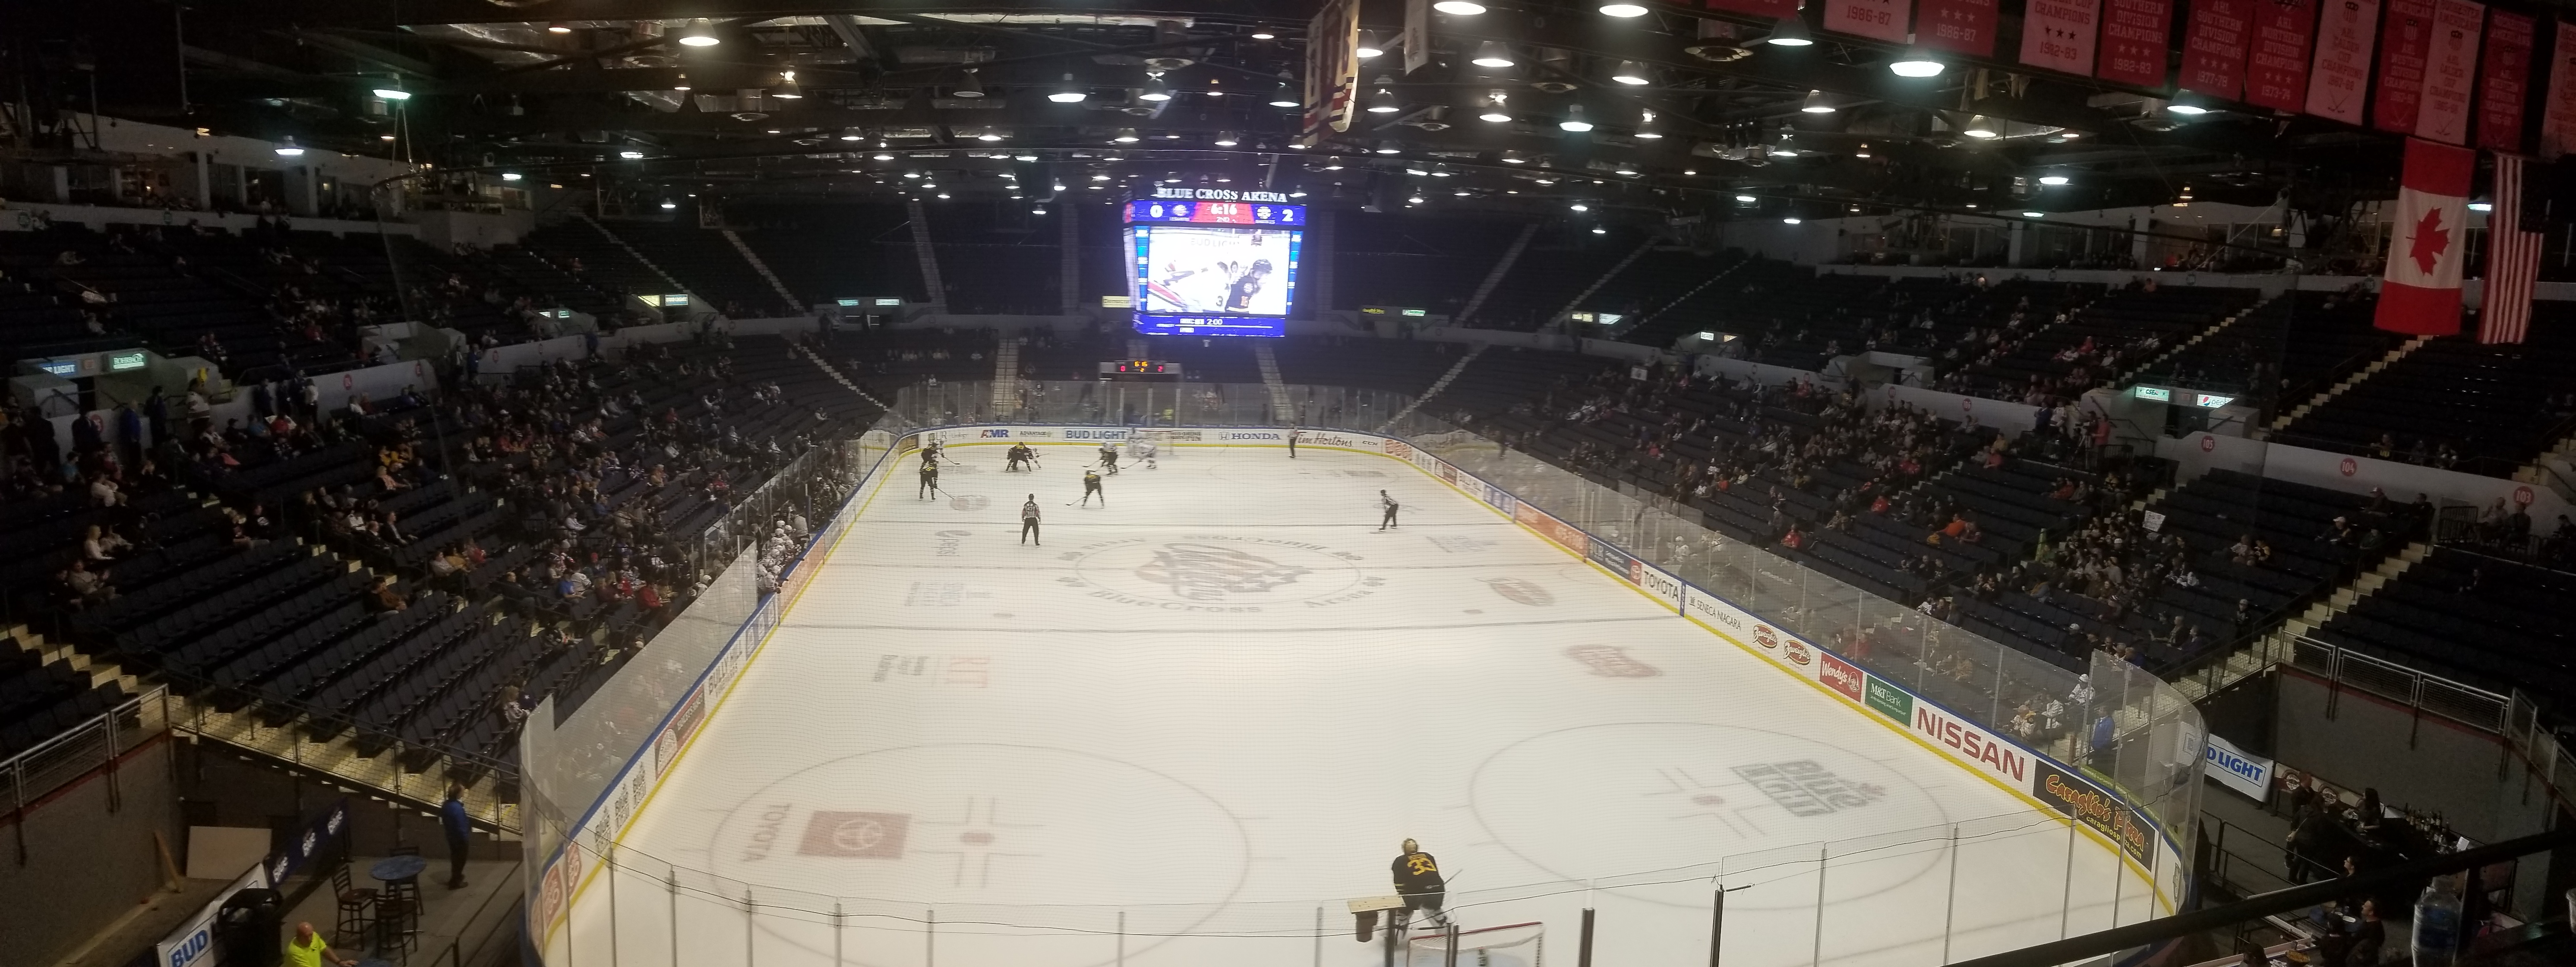 Amerks Home Attendance Numbers Since 2005